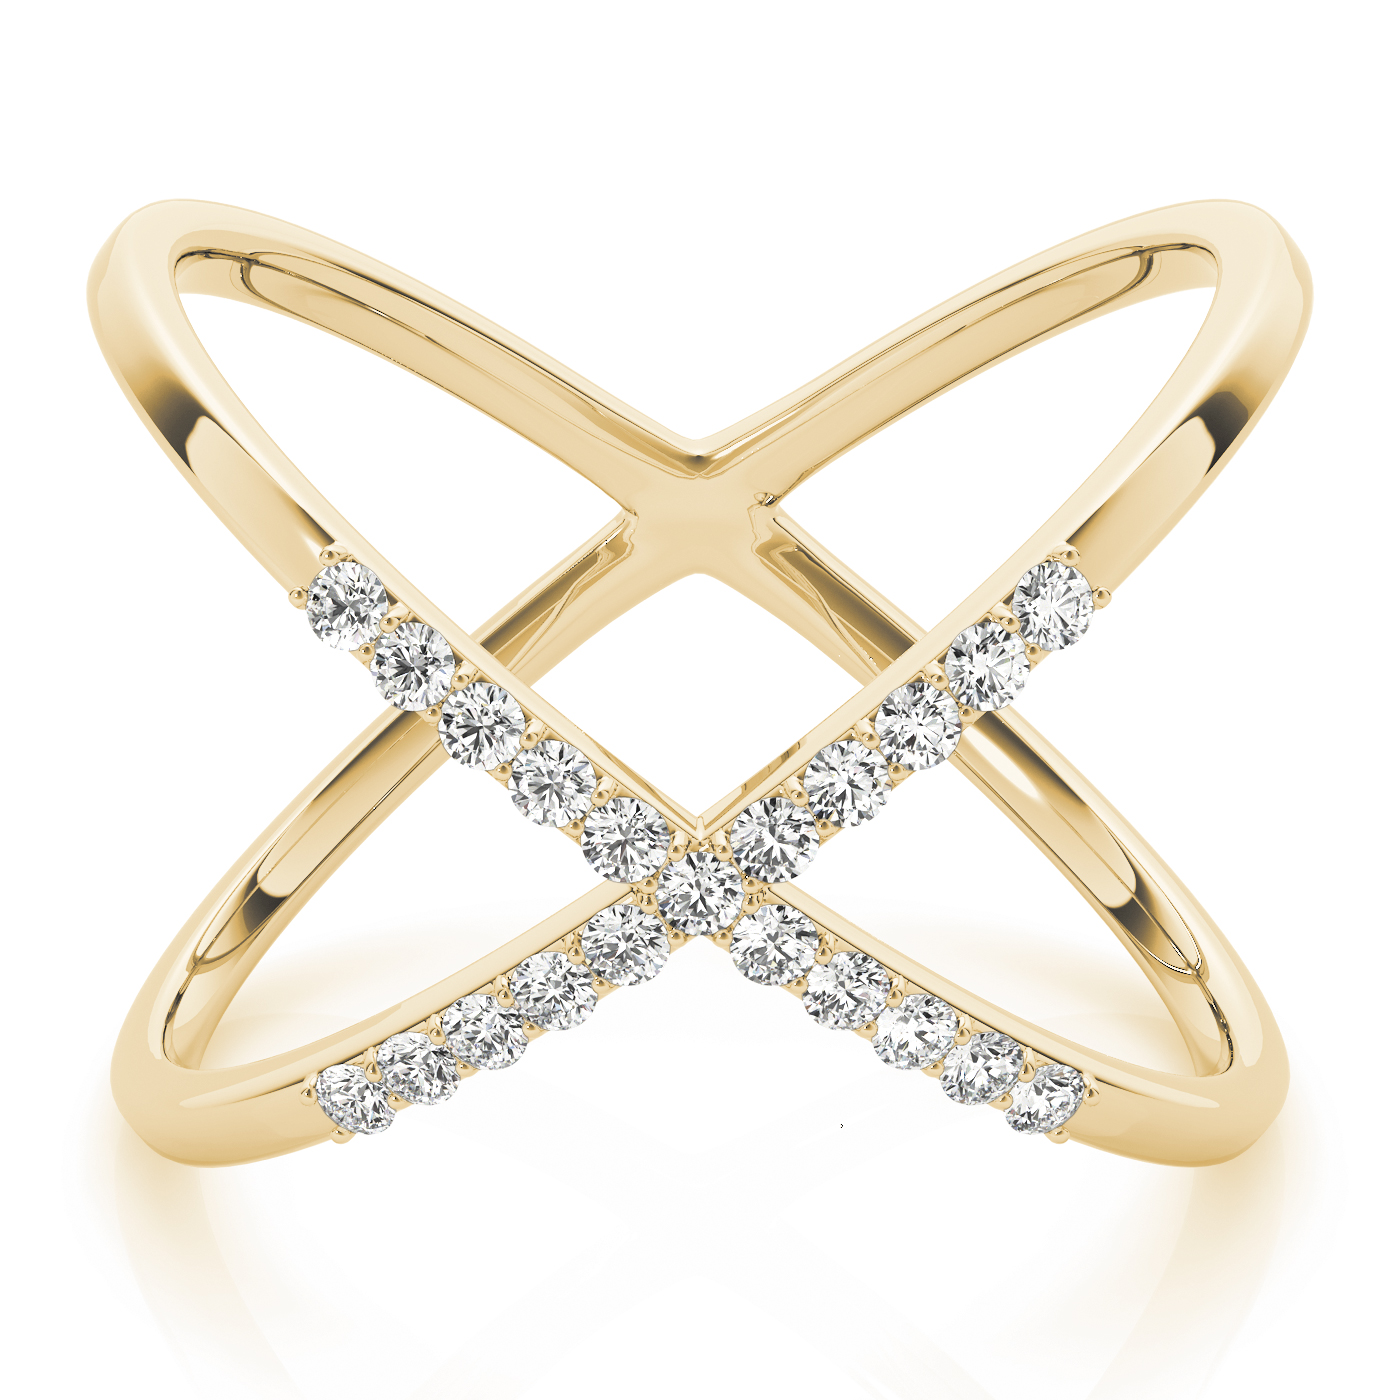 Abstract Criss Cross Diamond Ring in Yellow Gold